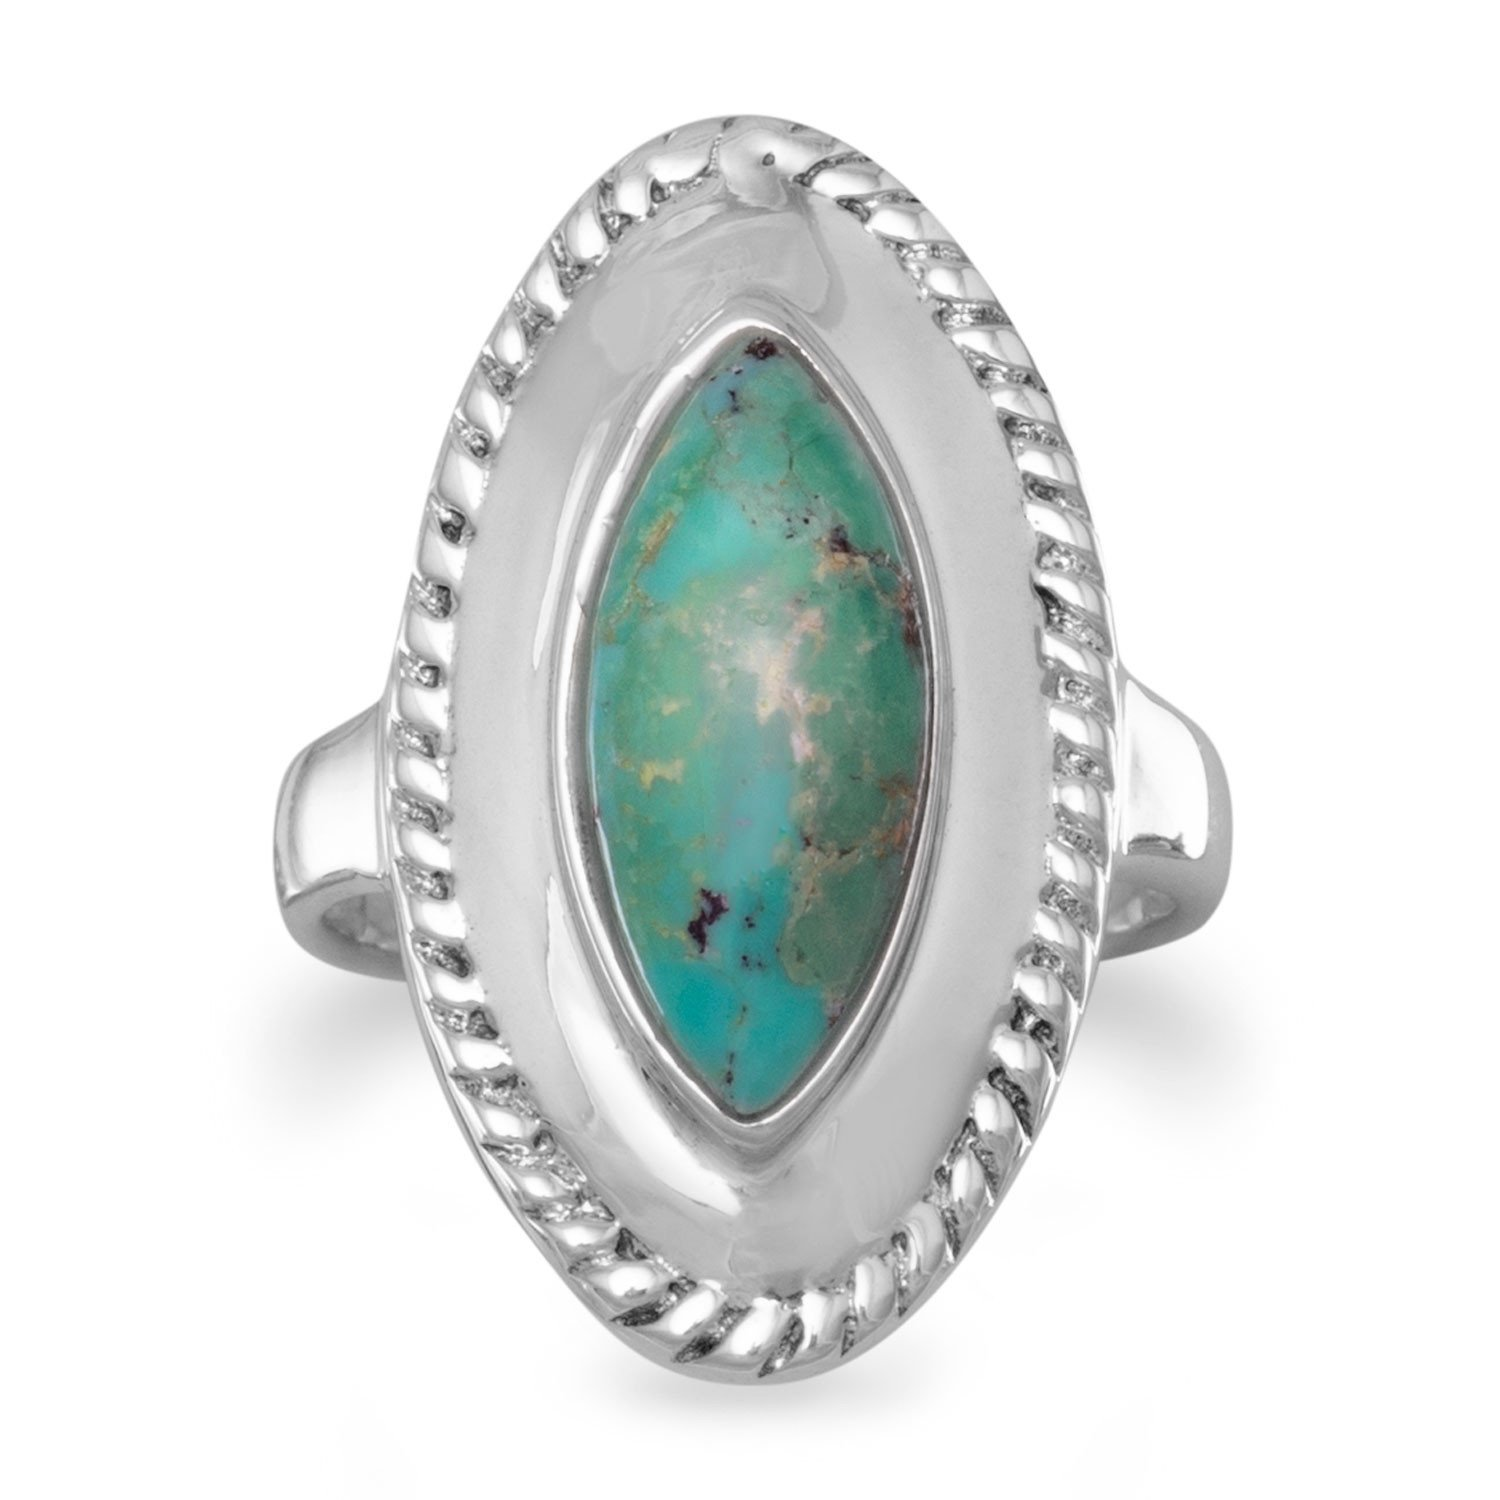 Oxidized Marquise Reconstituted Turquoise Ring